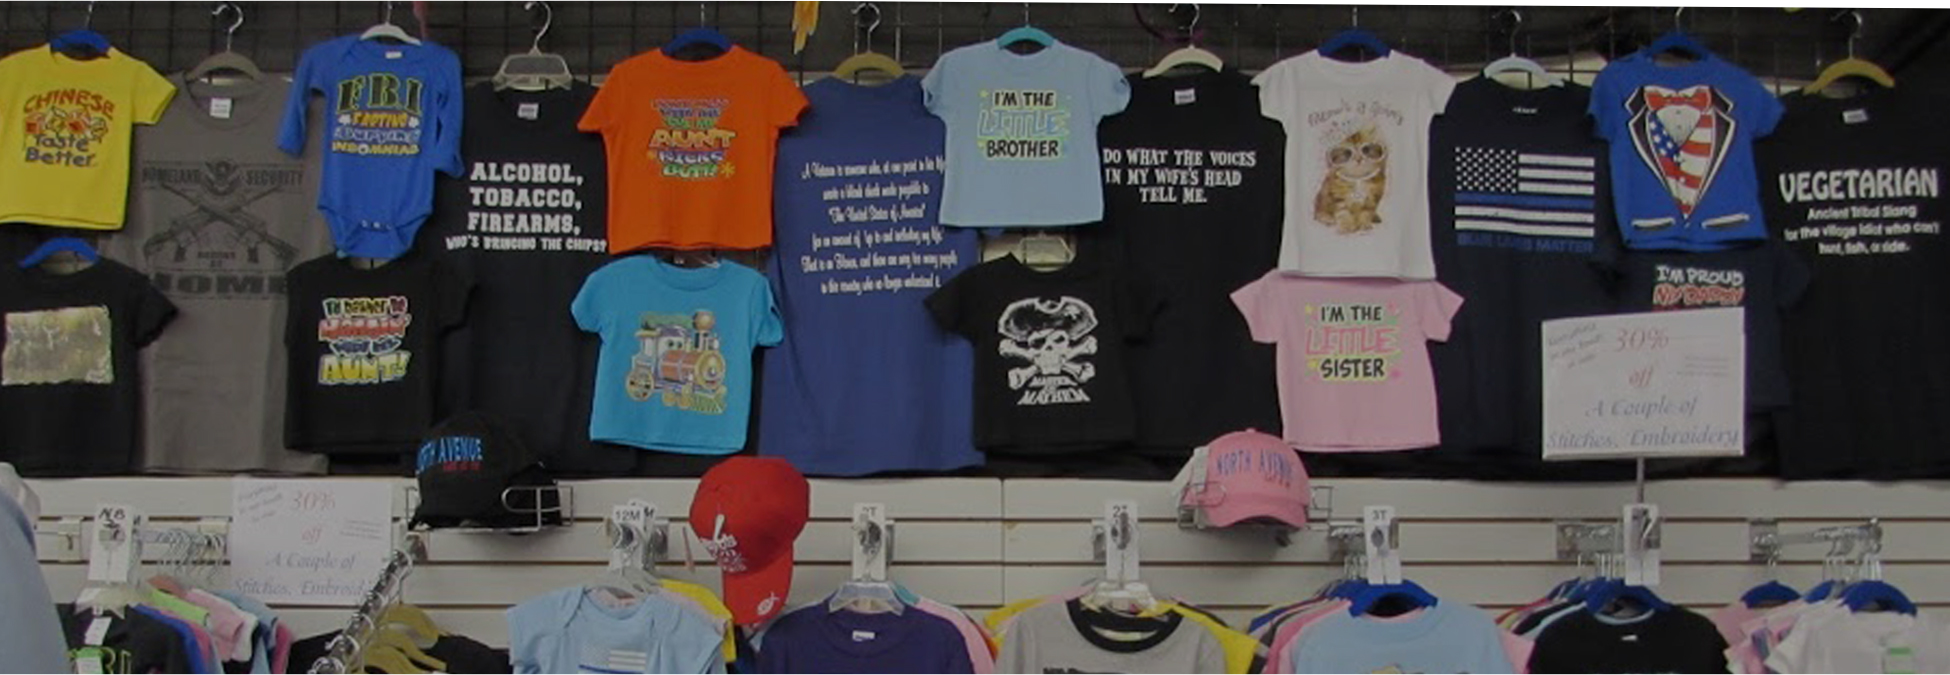 6e5959bb Embroidery Services for T-Shirts, Hats, and Bags in Grand Junction ...